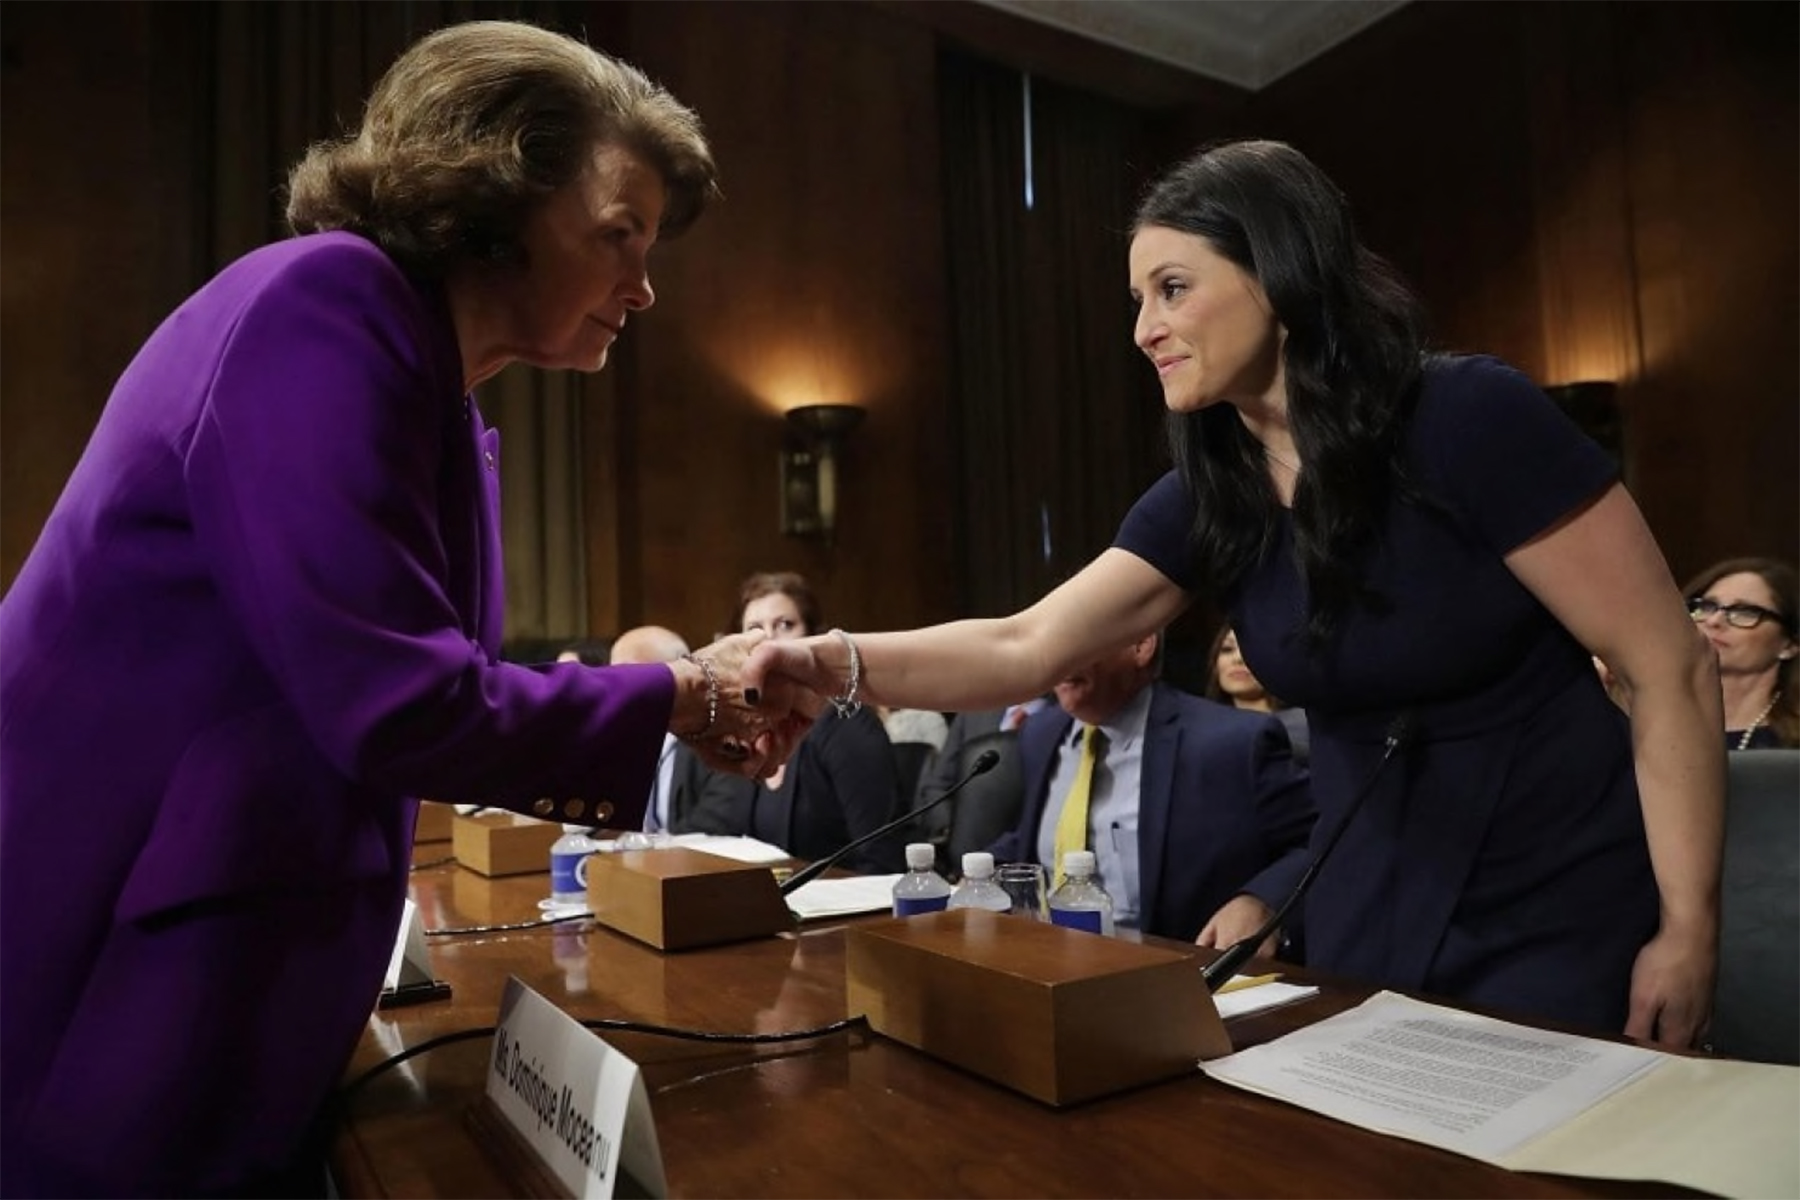 Sen. Dianne Feinstein greeted 1996 Olympic gold medalist Dominique Moceanu before she testified to a committee about sexual, emotional and physical abuse by USA Gymnastics on March 28. (Chip Somodevilla/Getty Images)